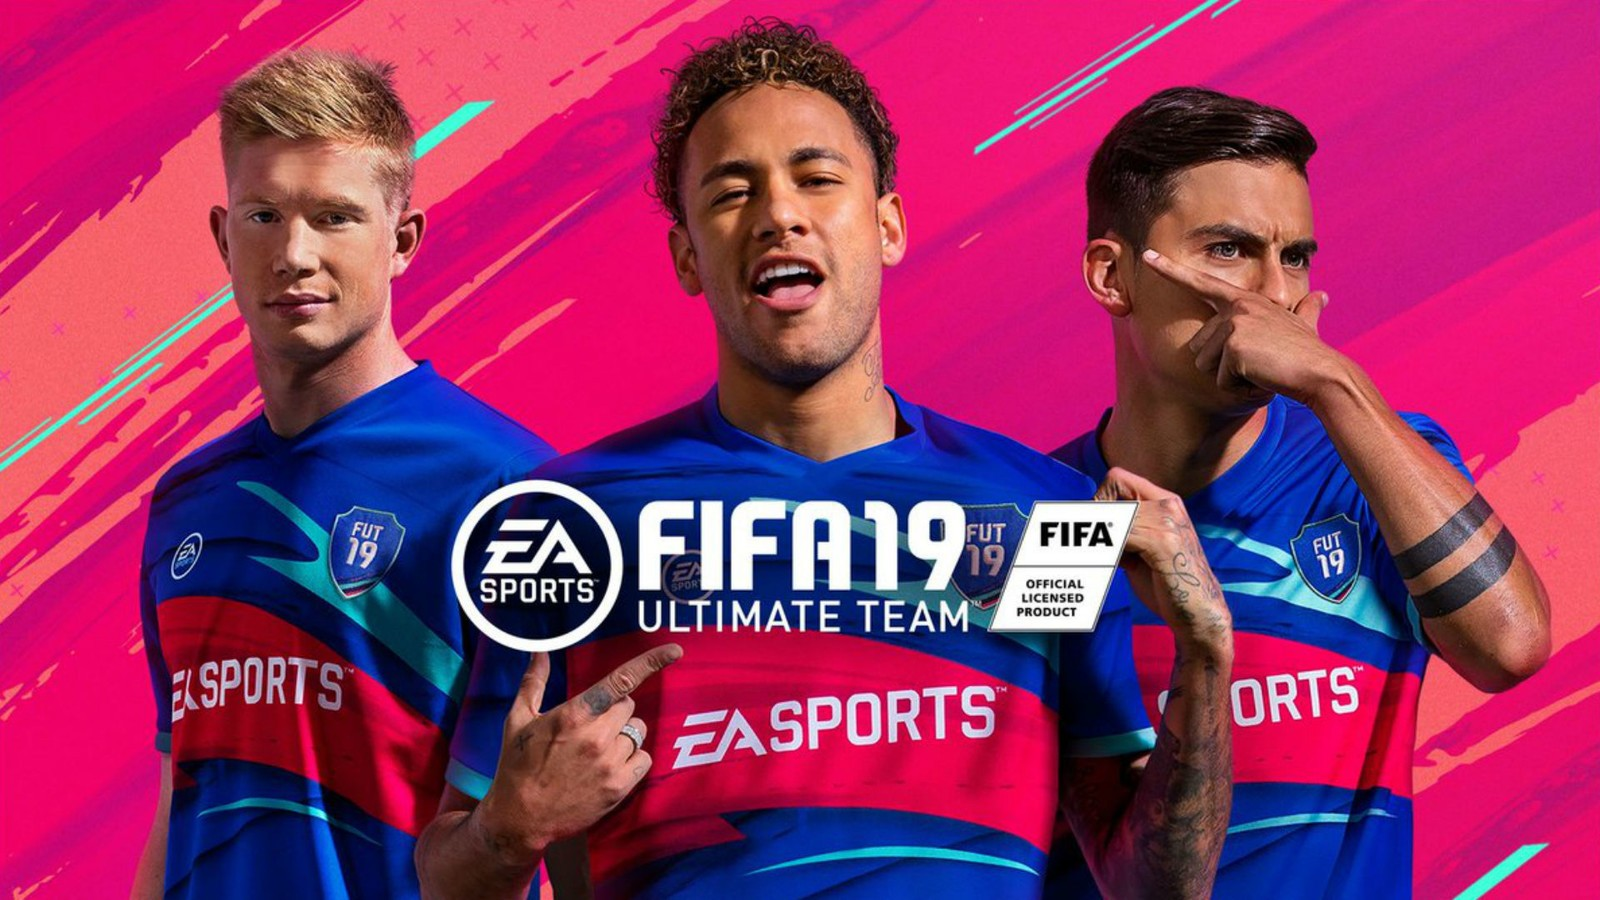 Fifa 2019 – fifa 2019 ps3 mediaworld